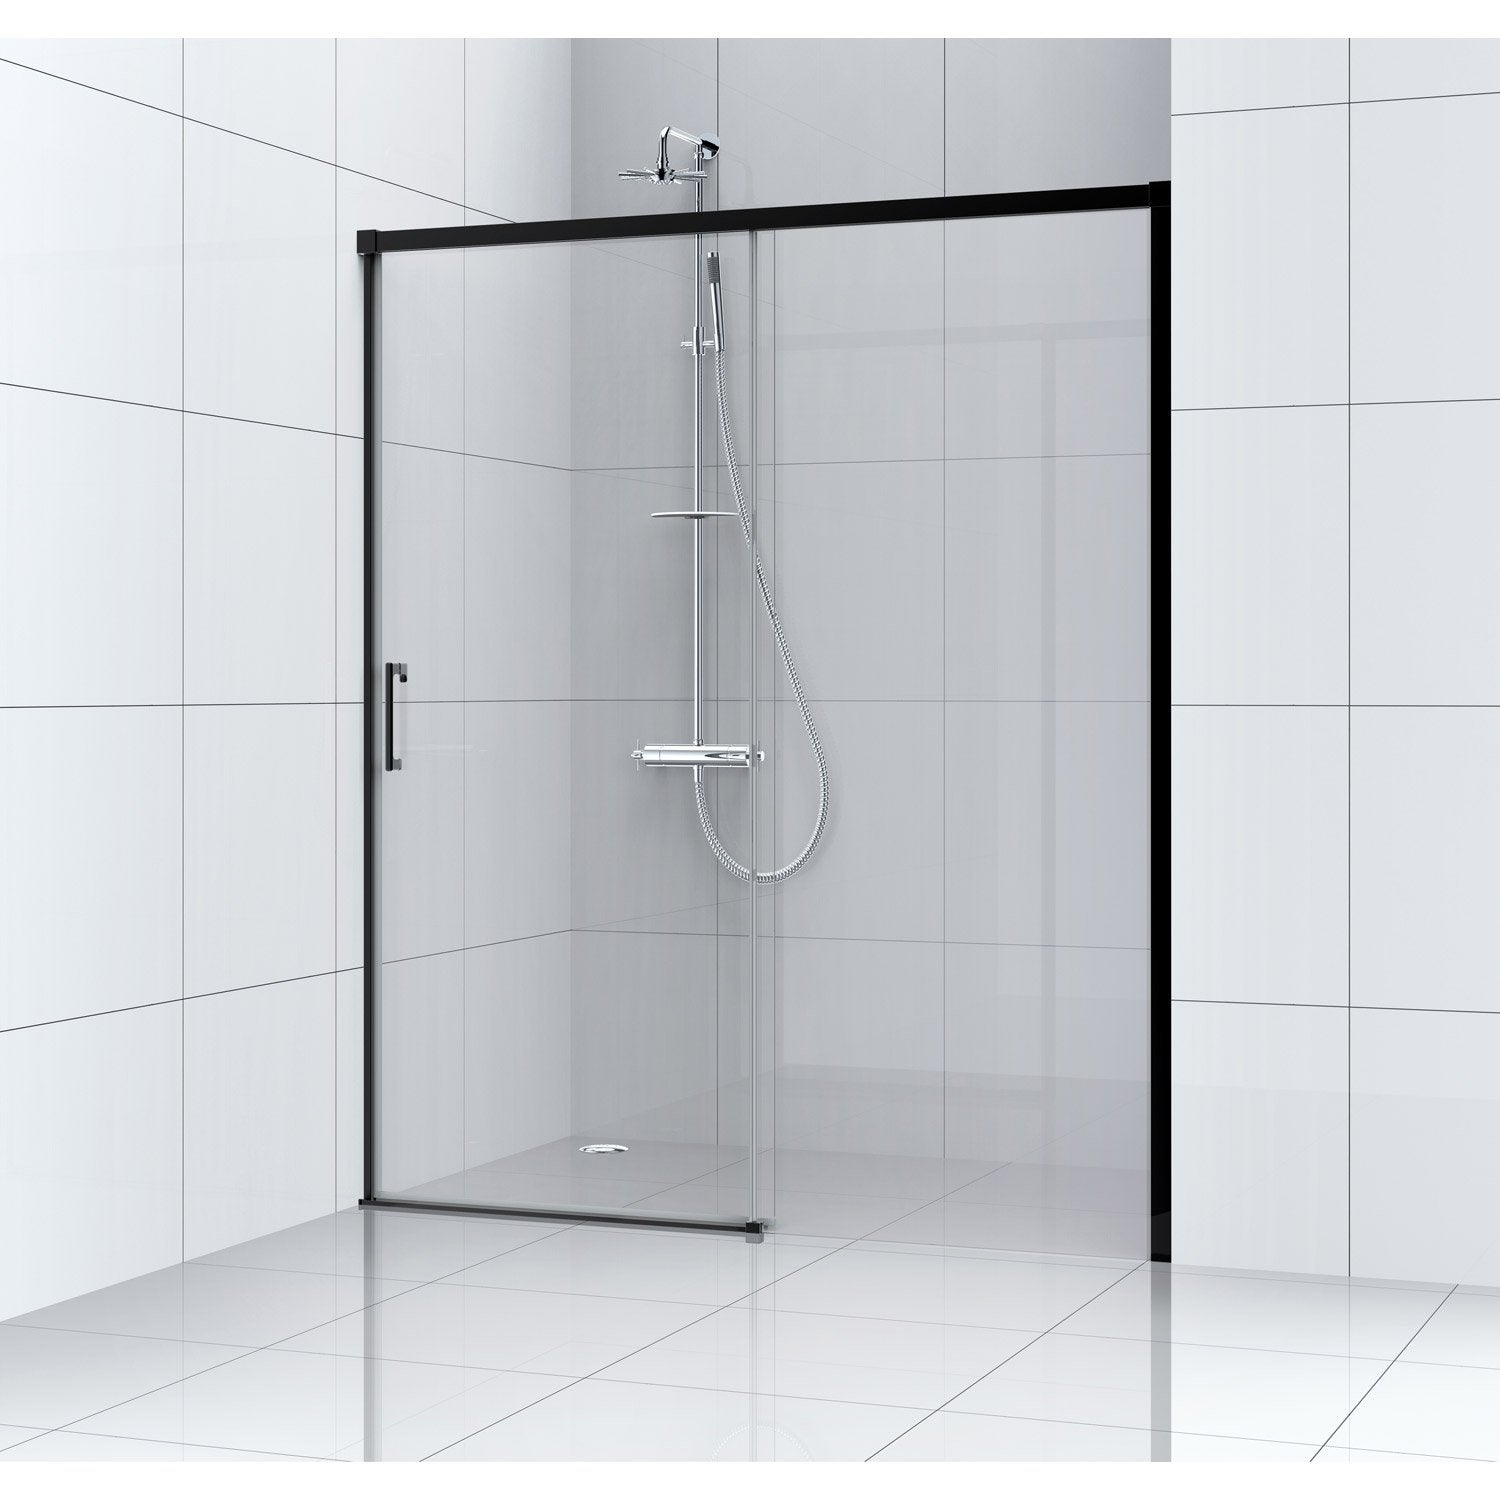 Porte de douche coulissante l 100 cm verre transparent for Portes de douche leroy merlin